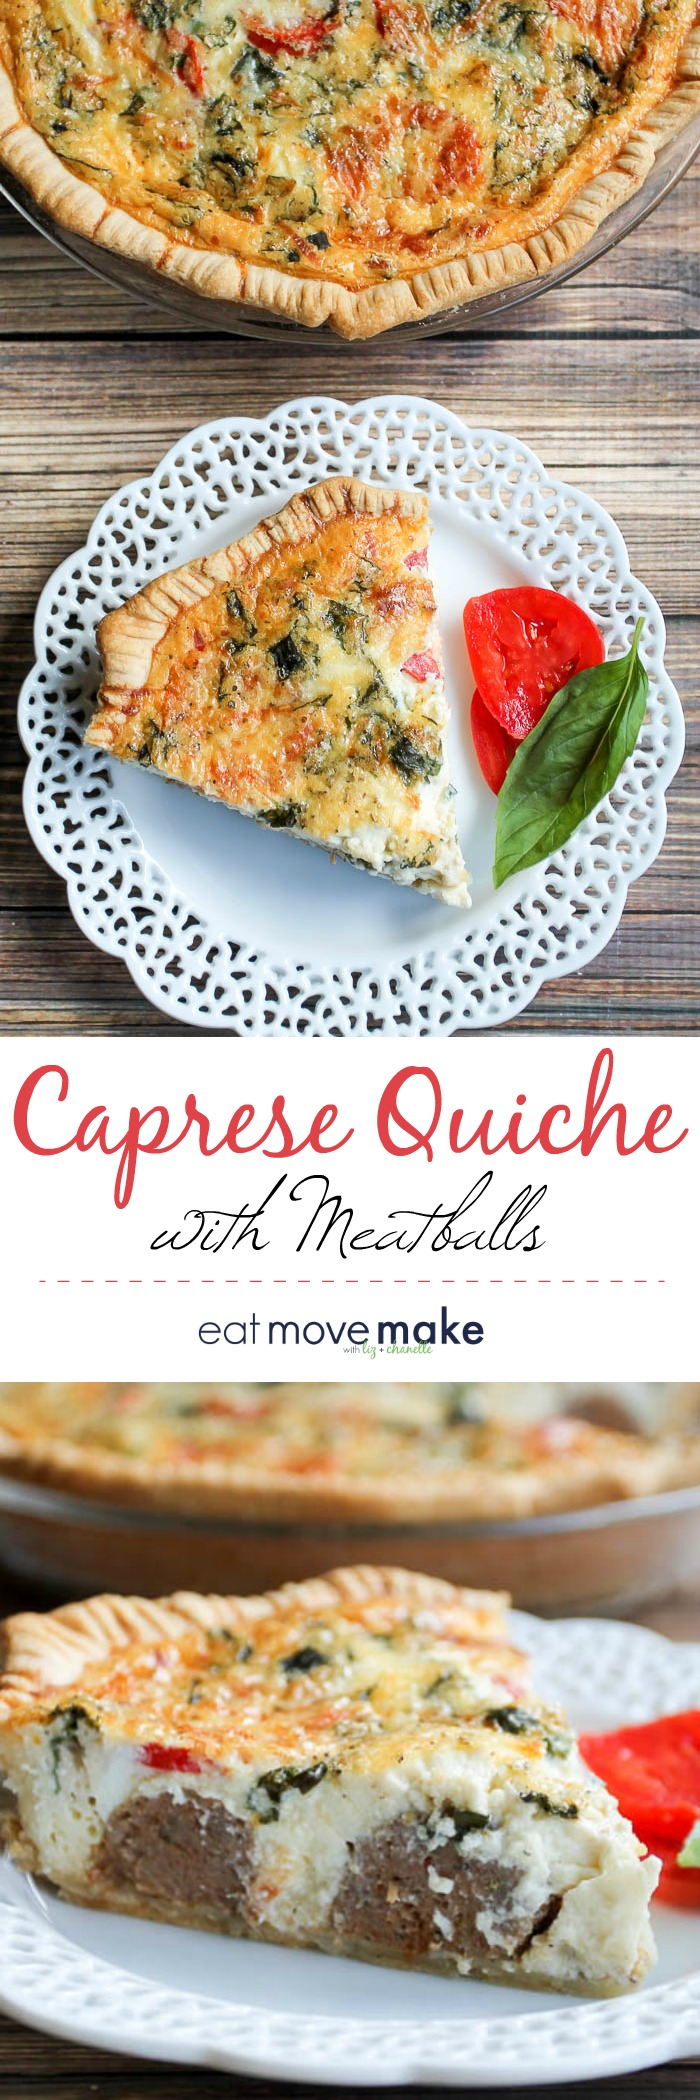 slice of caprese quiche with meatballs on plate